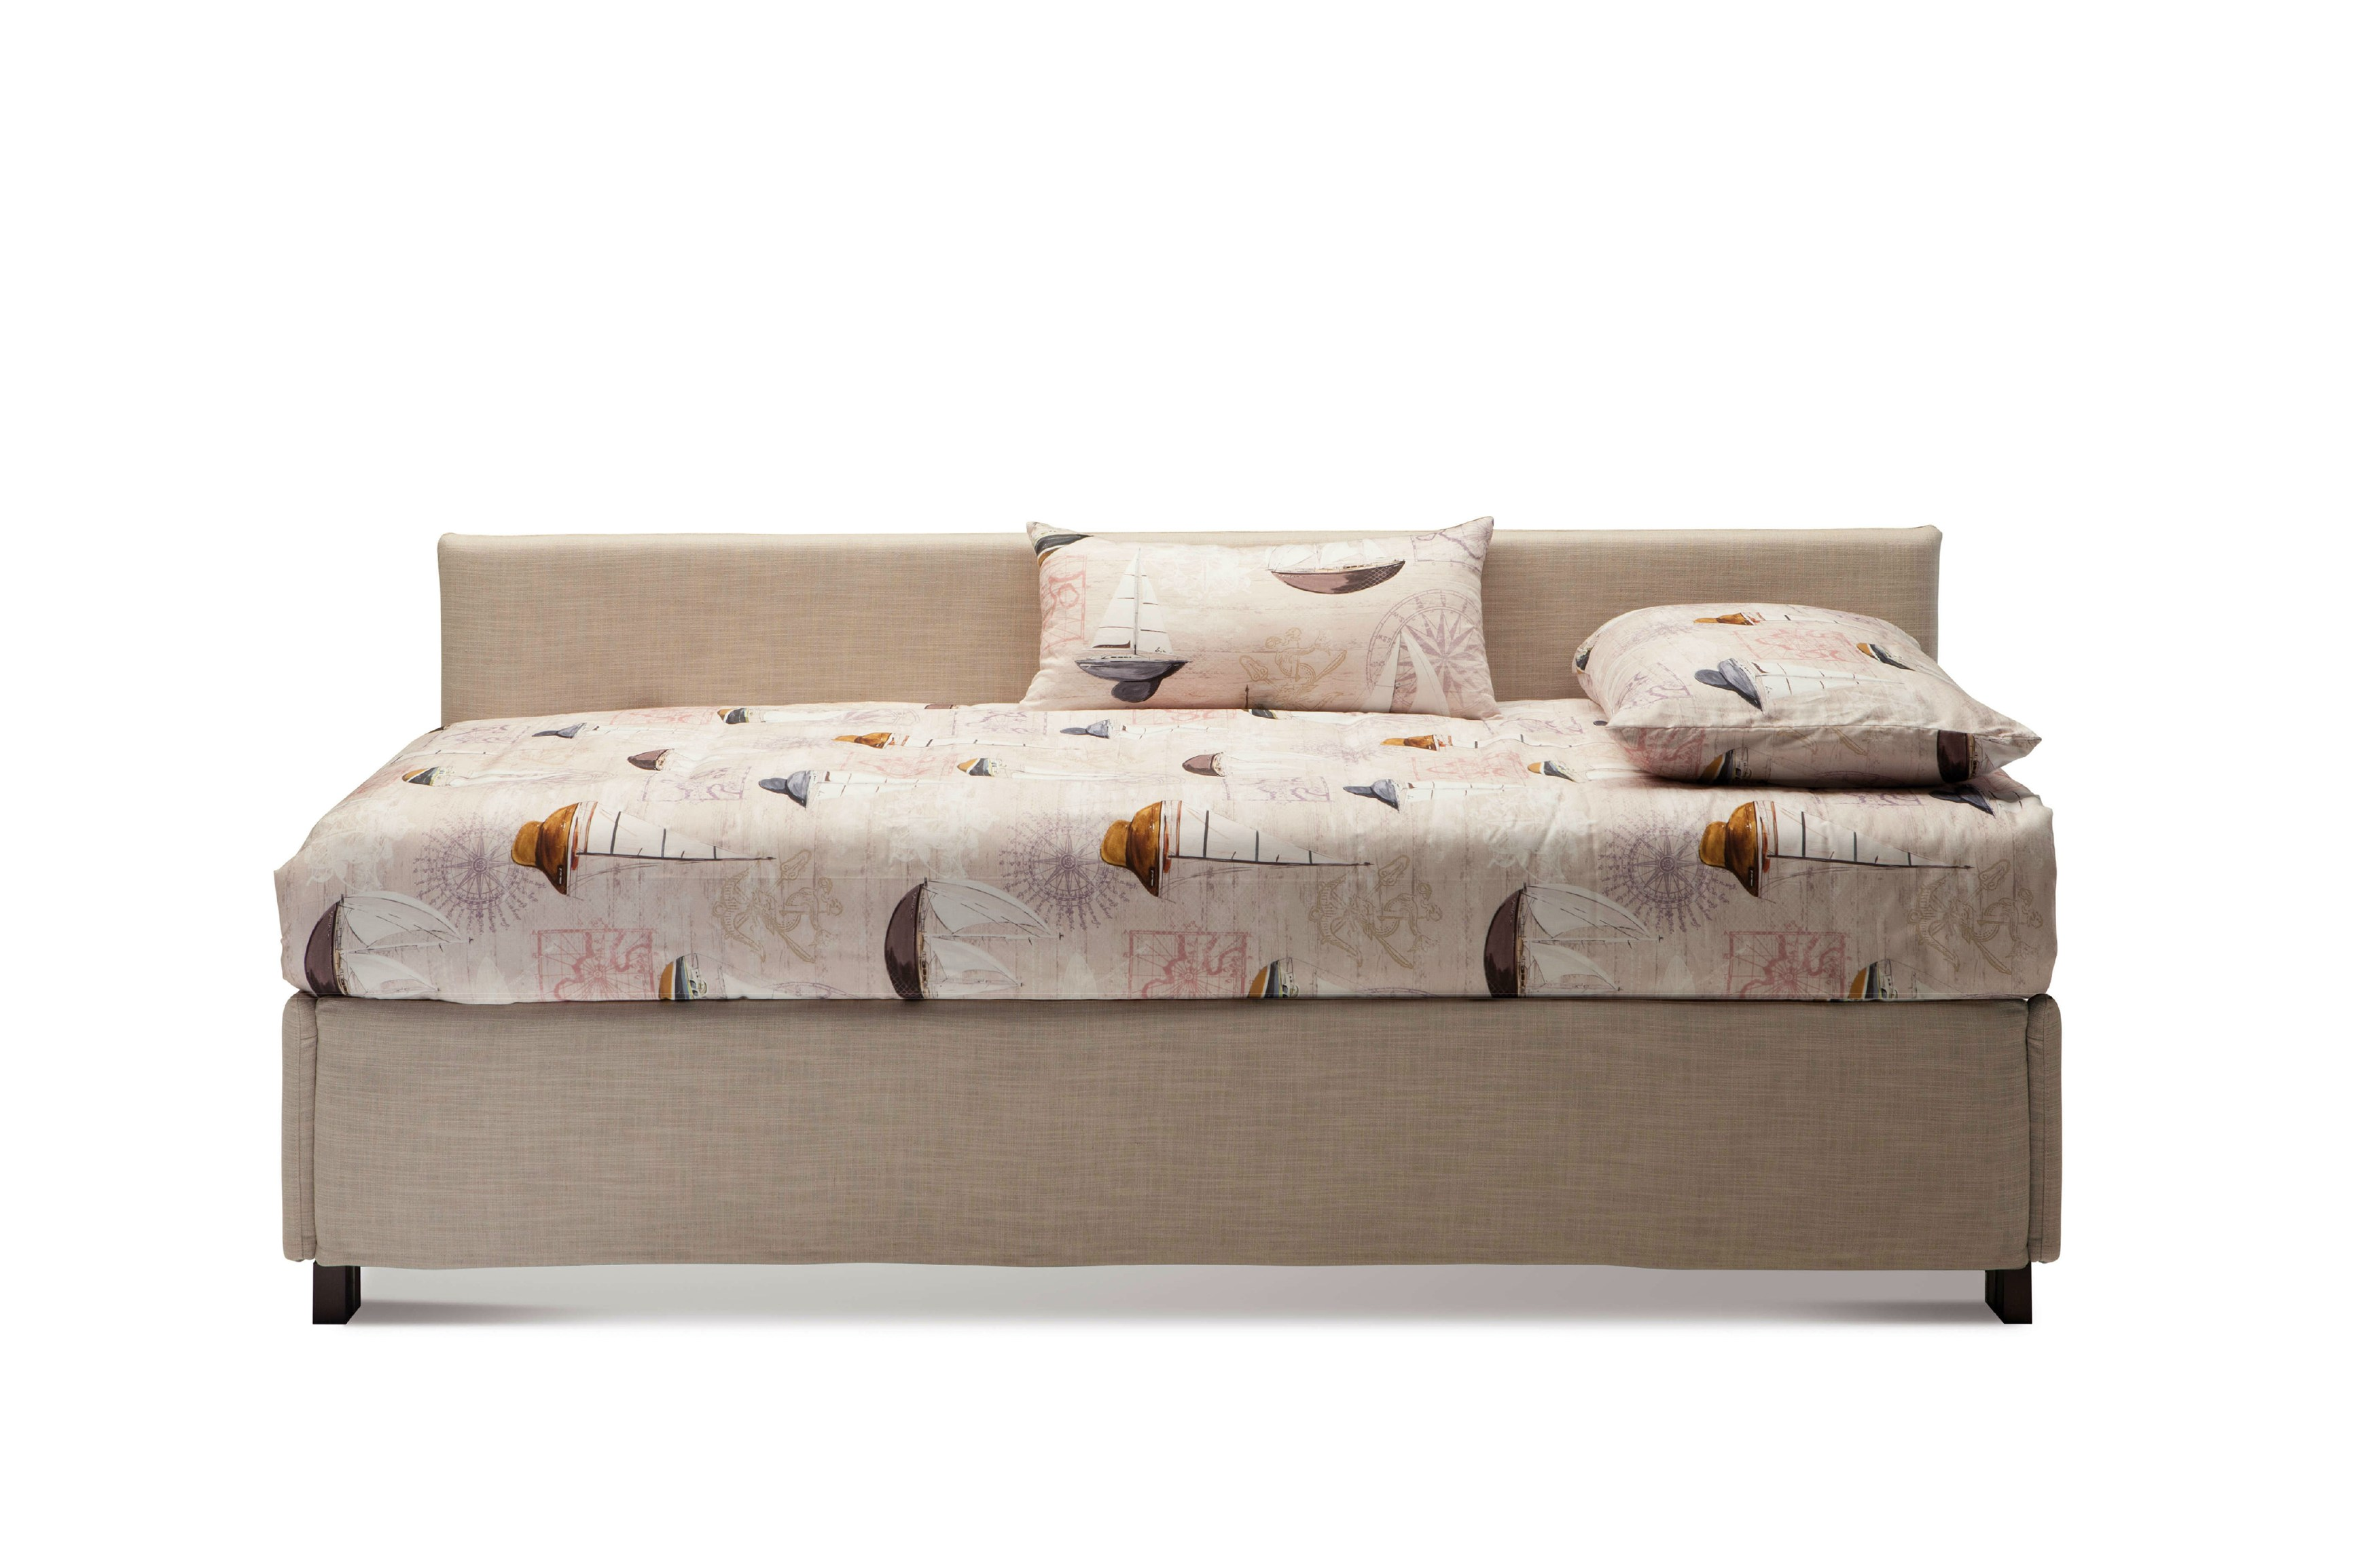 Trundle single bed ANTIGUA by Milano Bedding